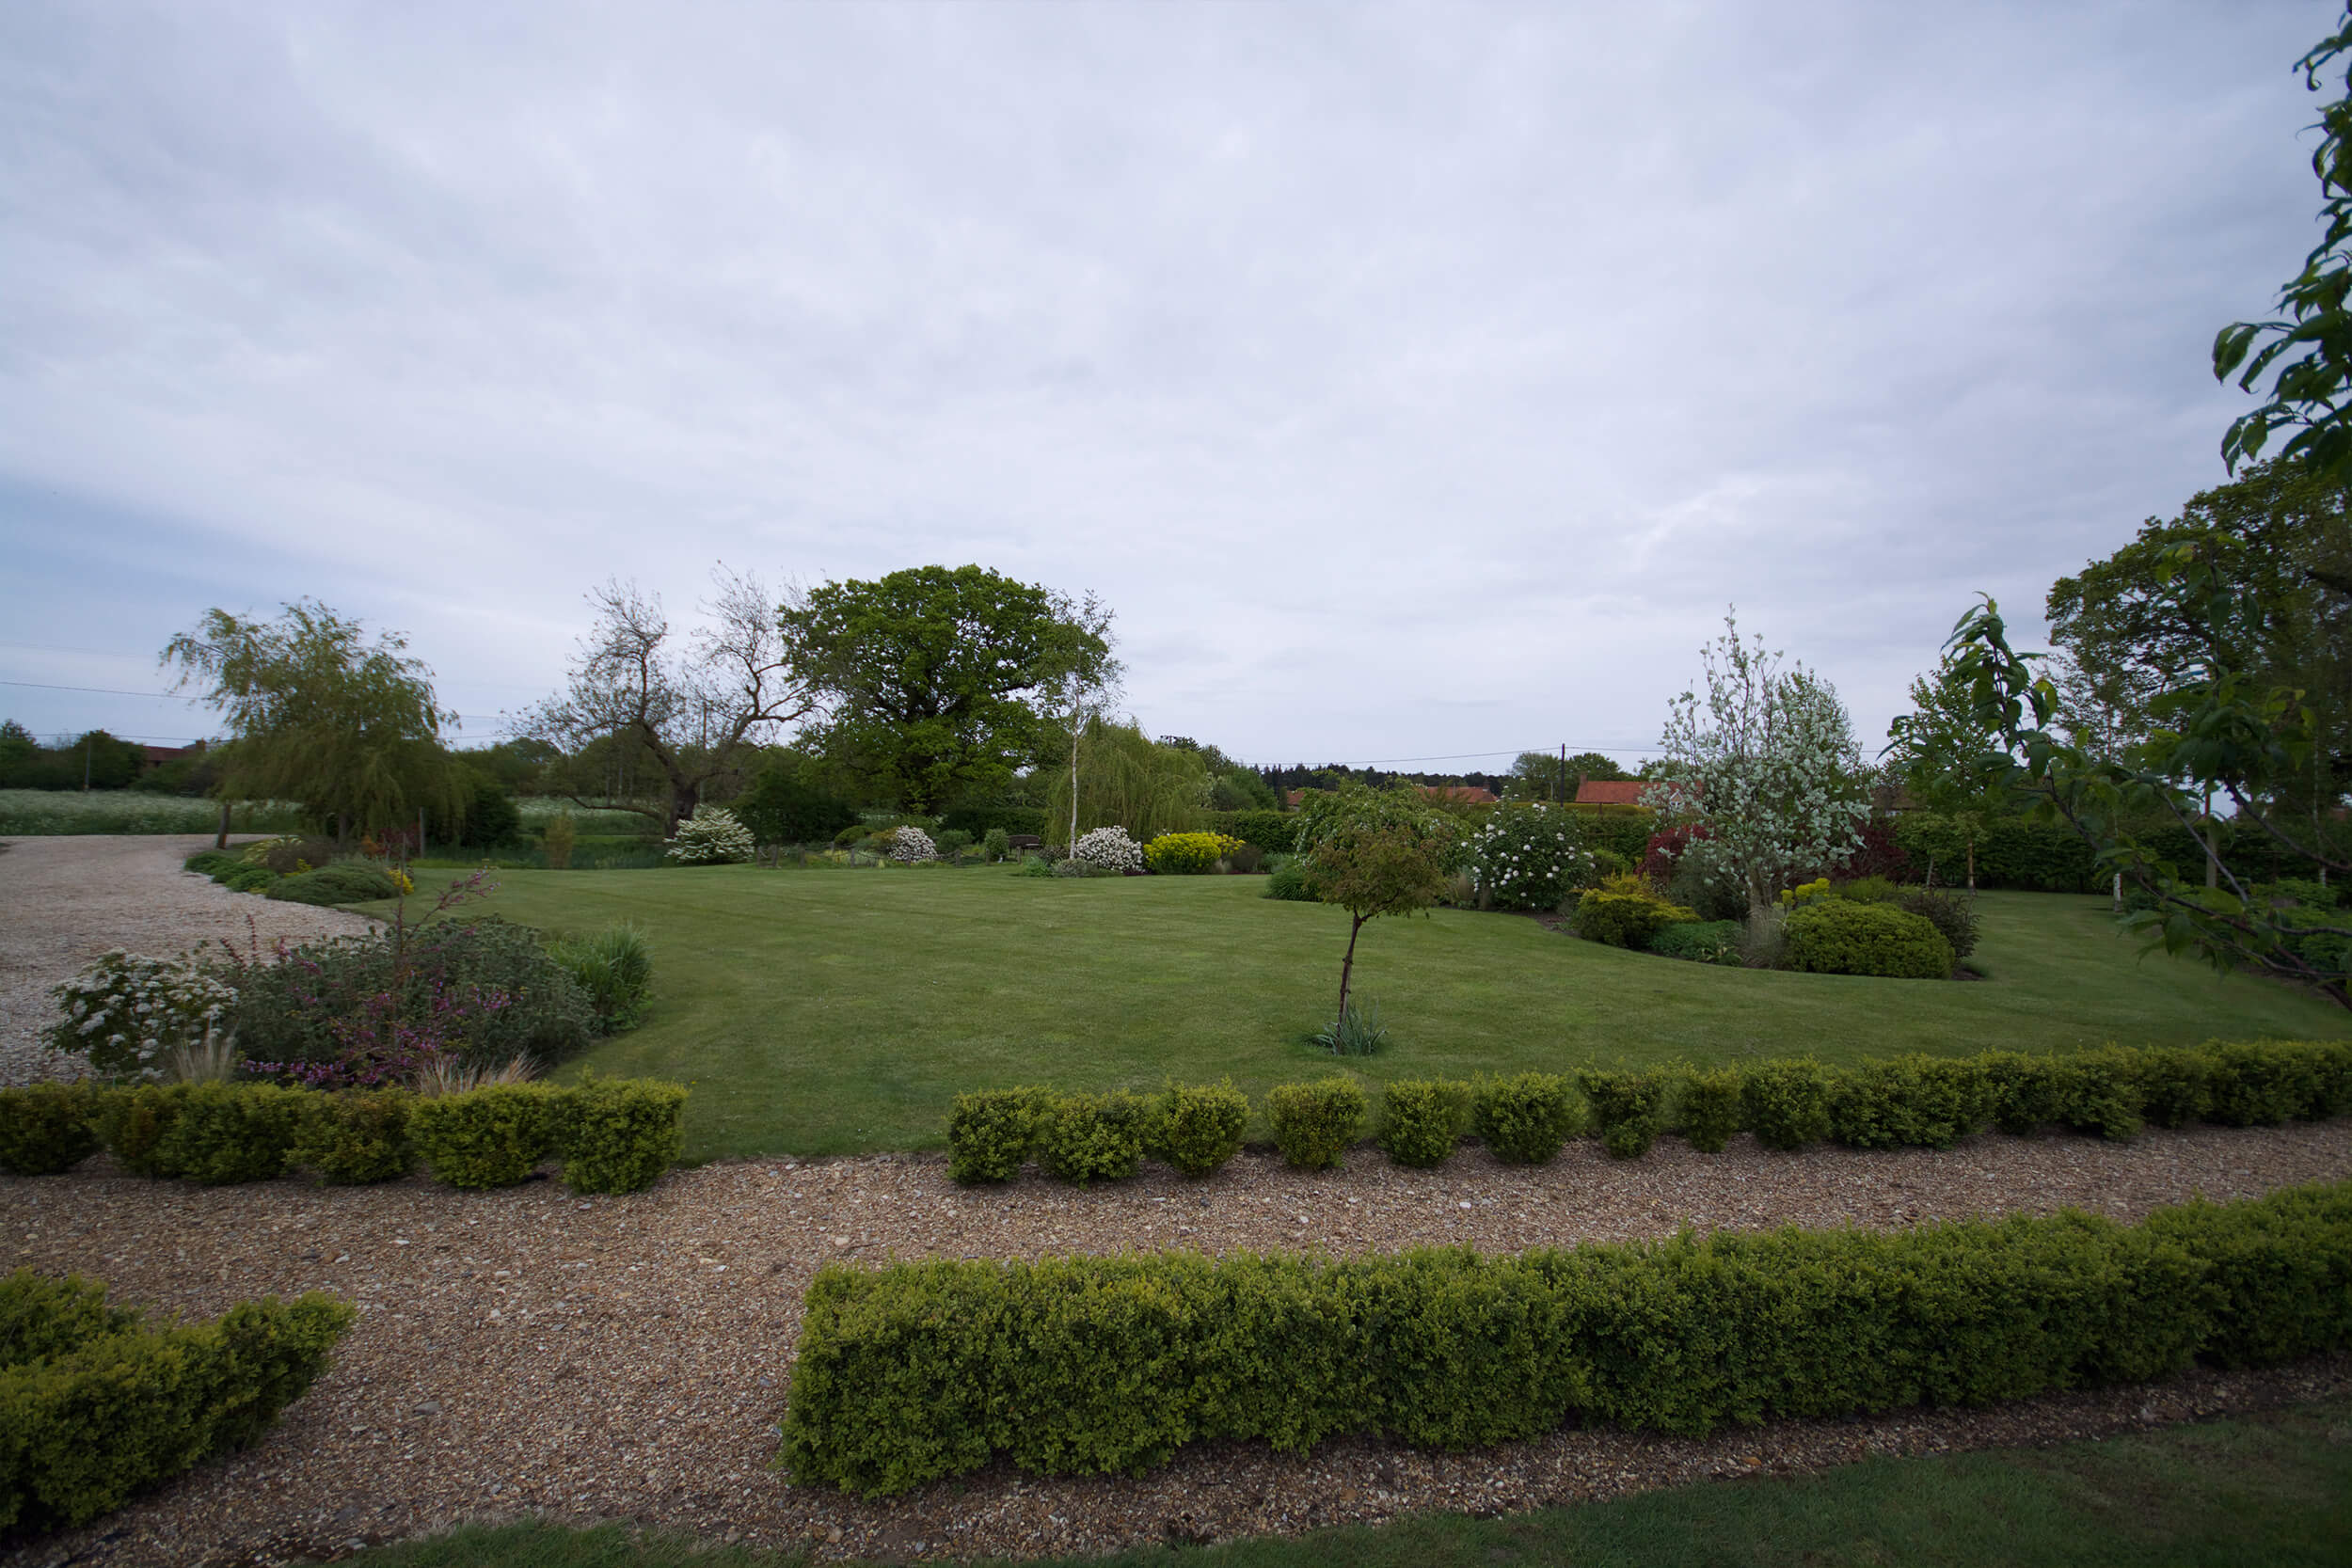 Jex Farm Bed and Breakfast in North Norfolk